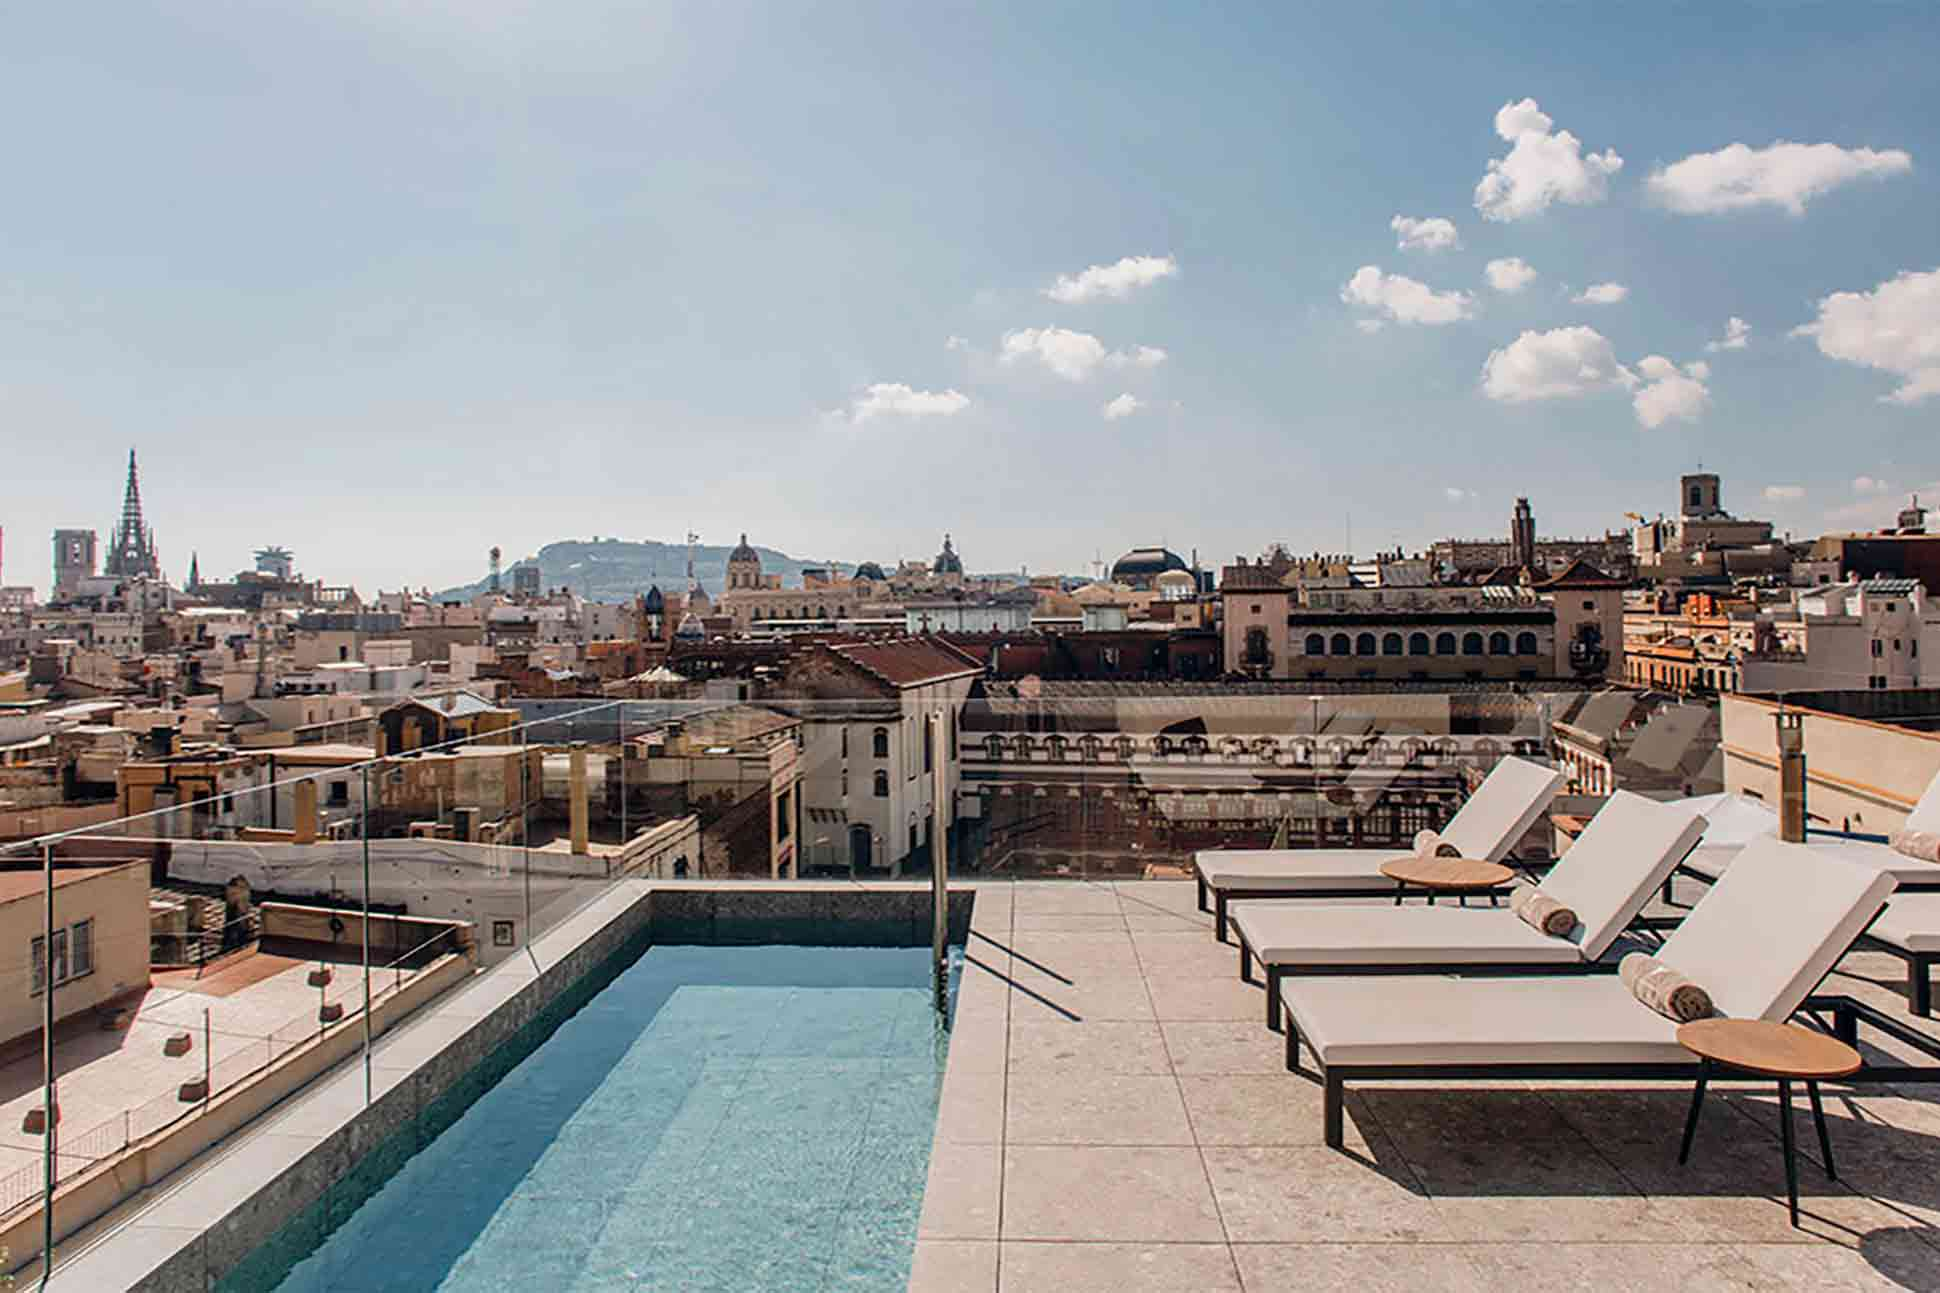 Yurbban Passage Hotel & Spa <br> Barcelona, Spain